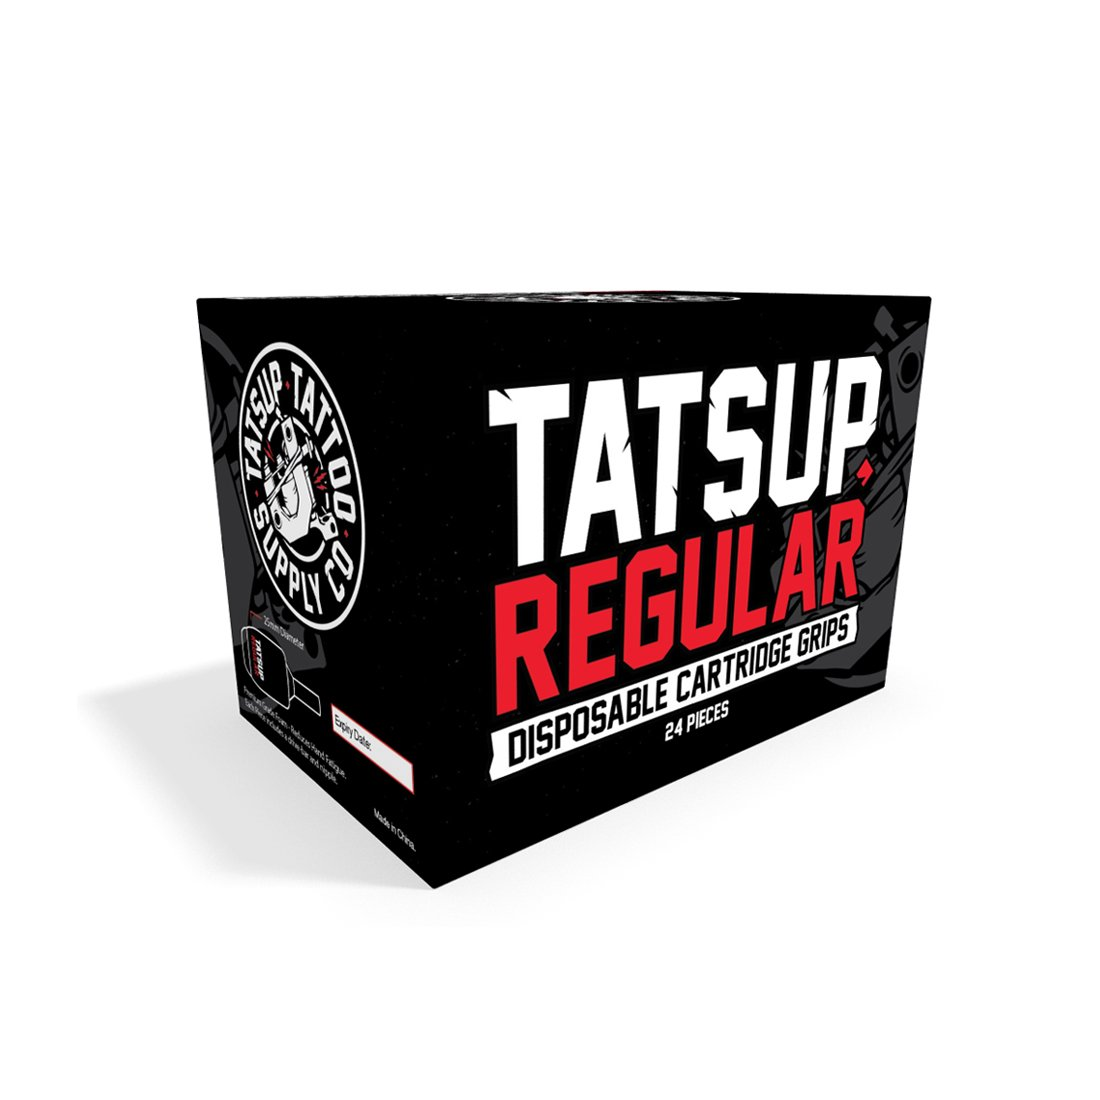 Tatsup Regular (25mm) Disposable Cartridge Grips